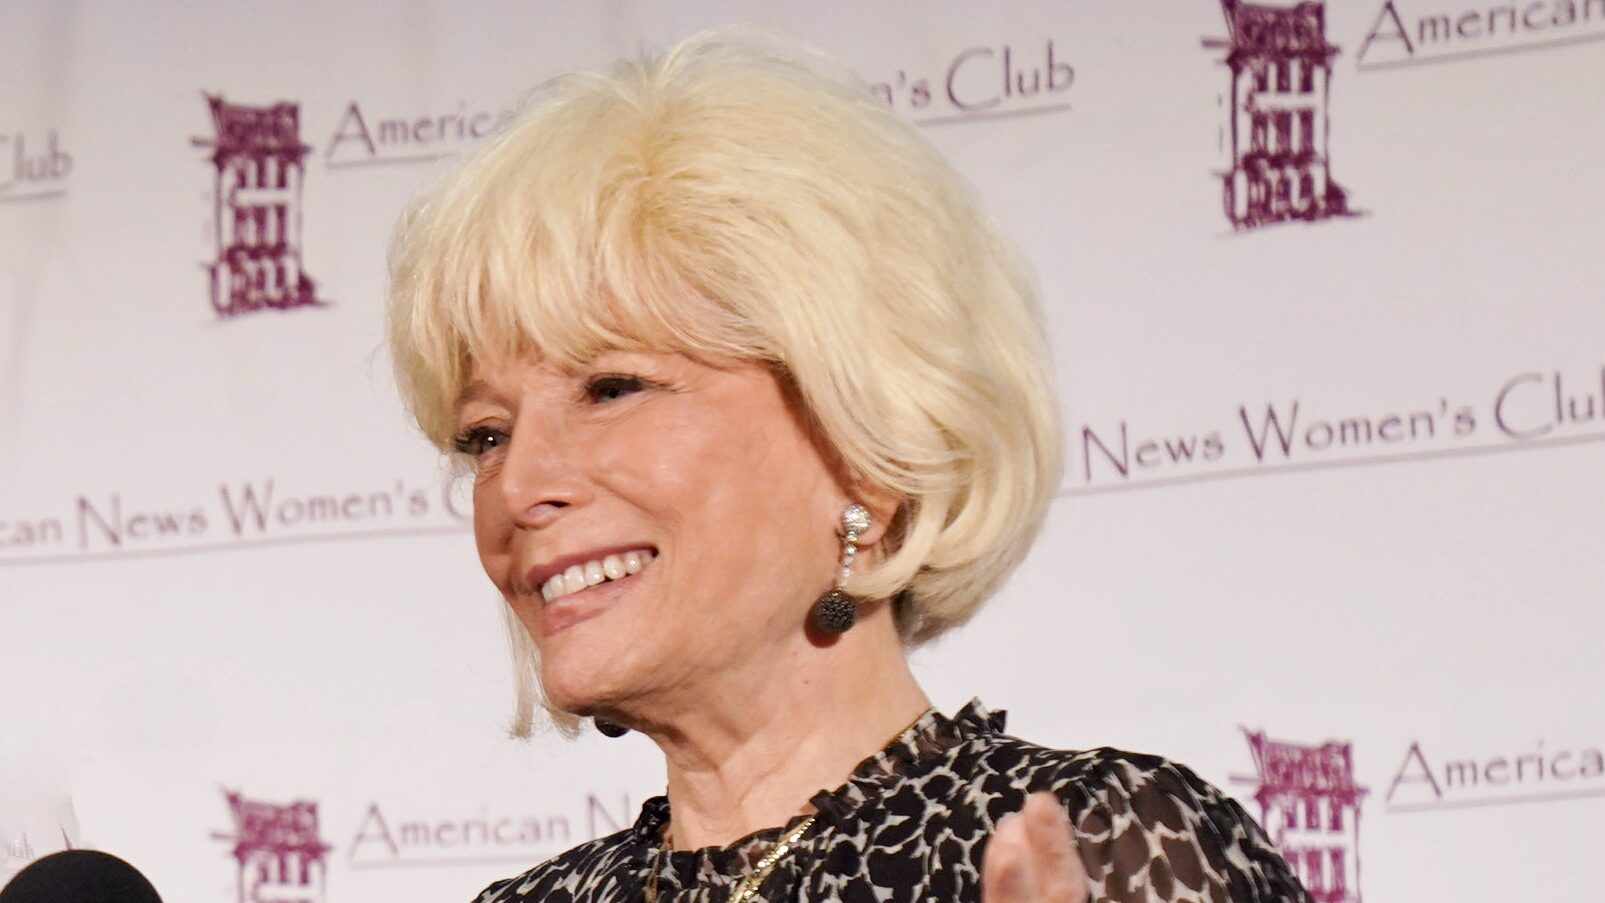 VIDEO: Lesley Stahl: TV News Has 'Shredded Credibility' But Trump Didn't Start It